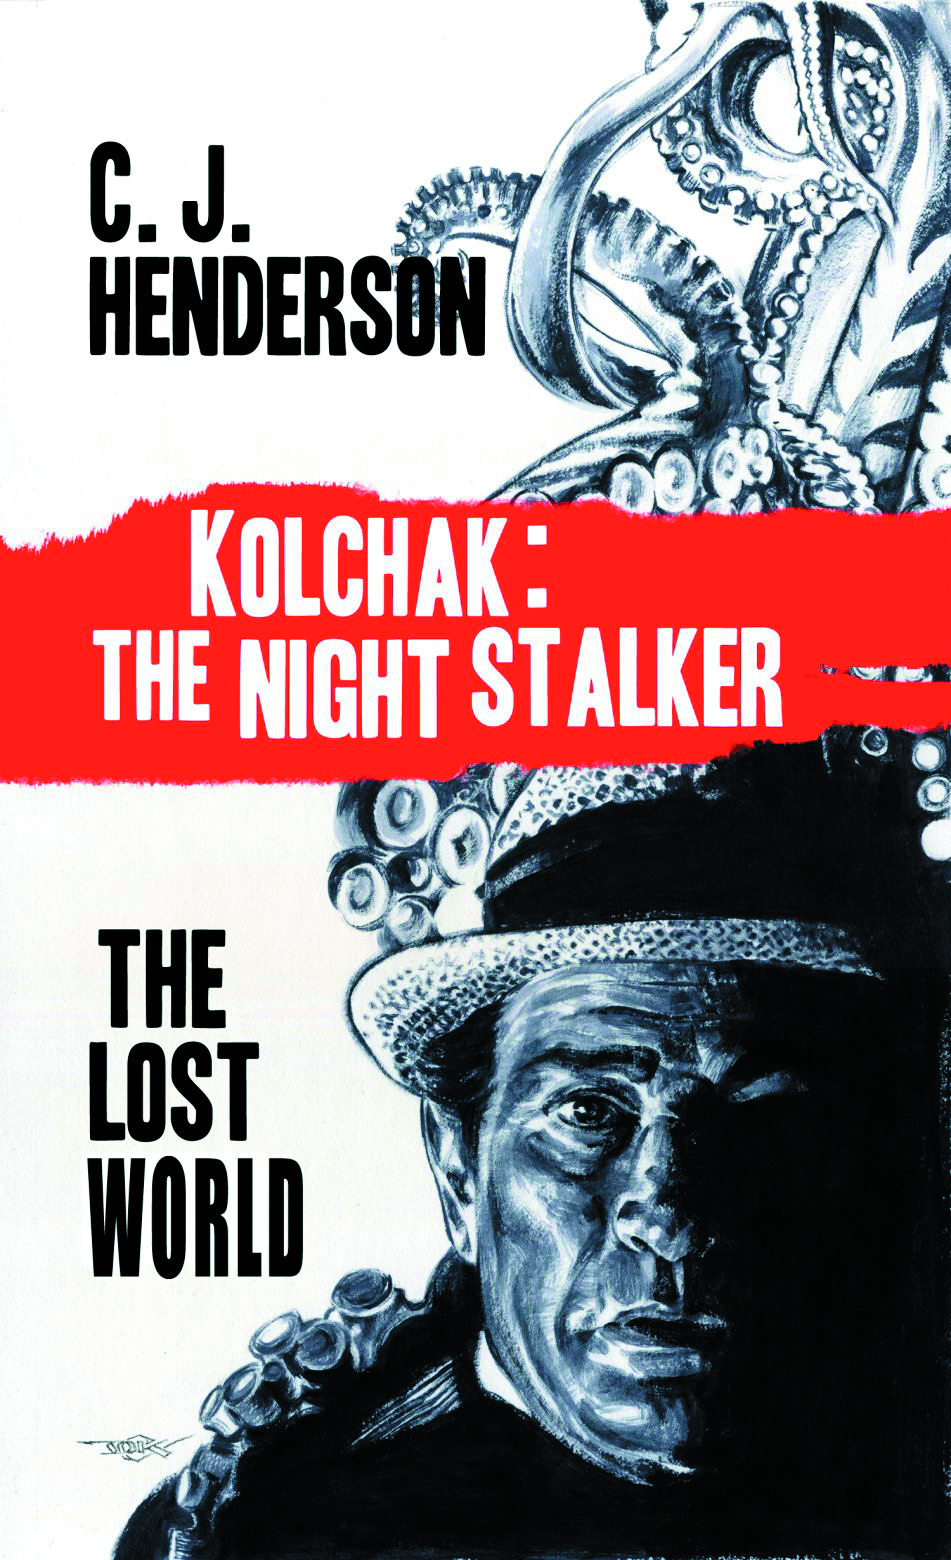 KOLCHAK AND LOST WORLD NOVEL